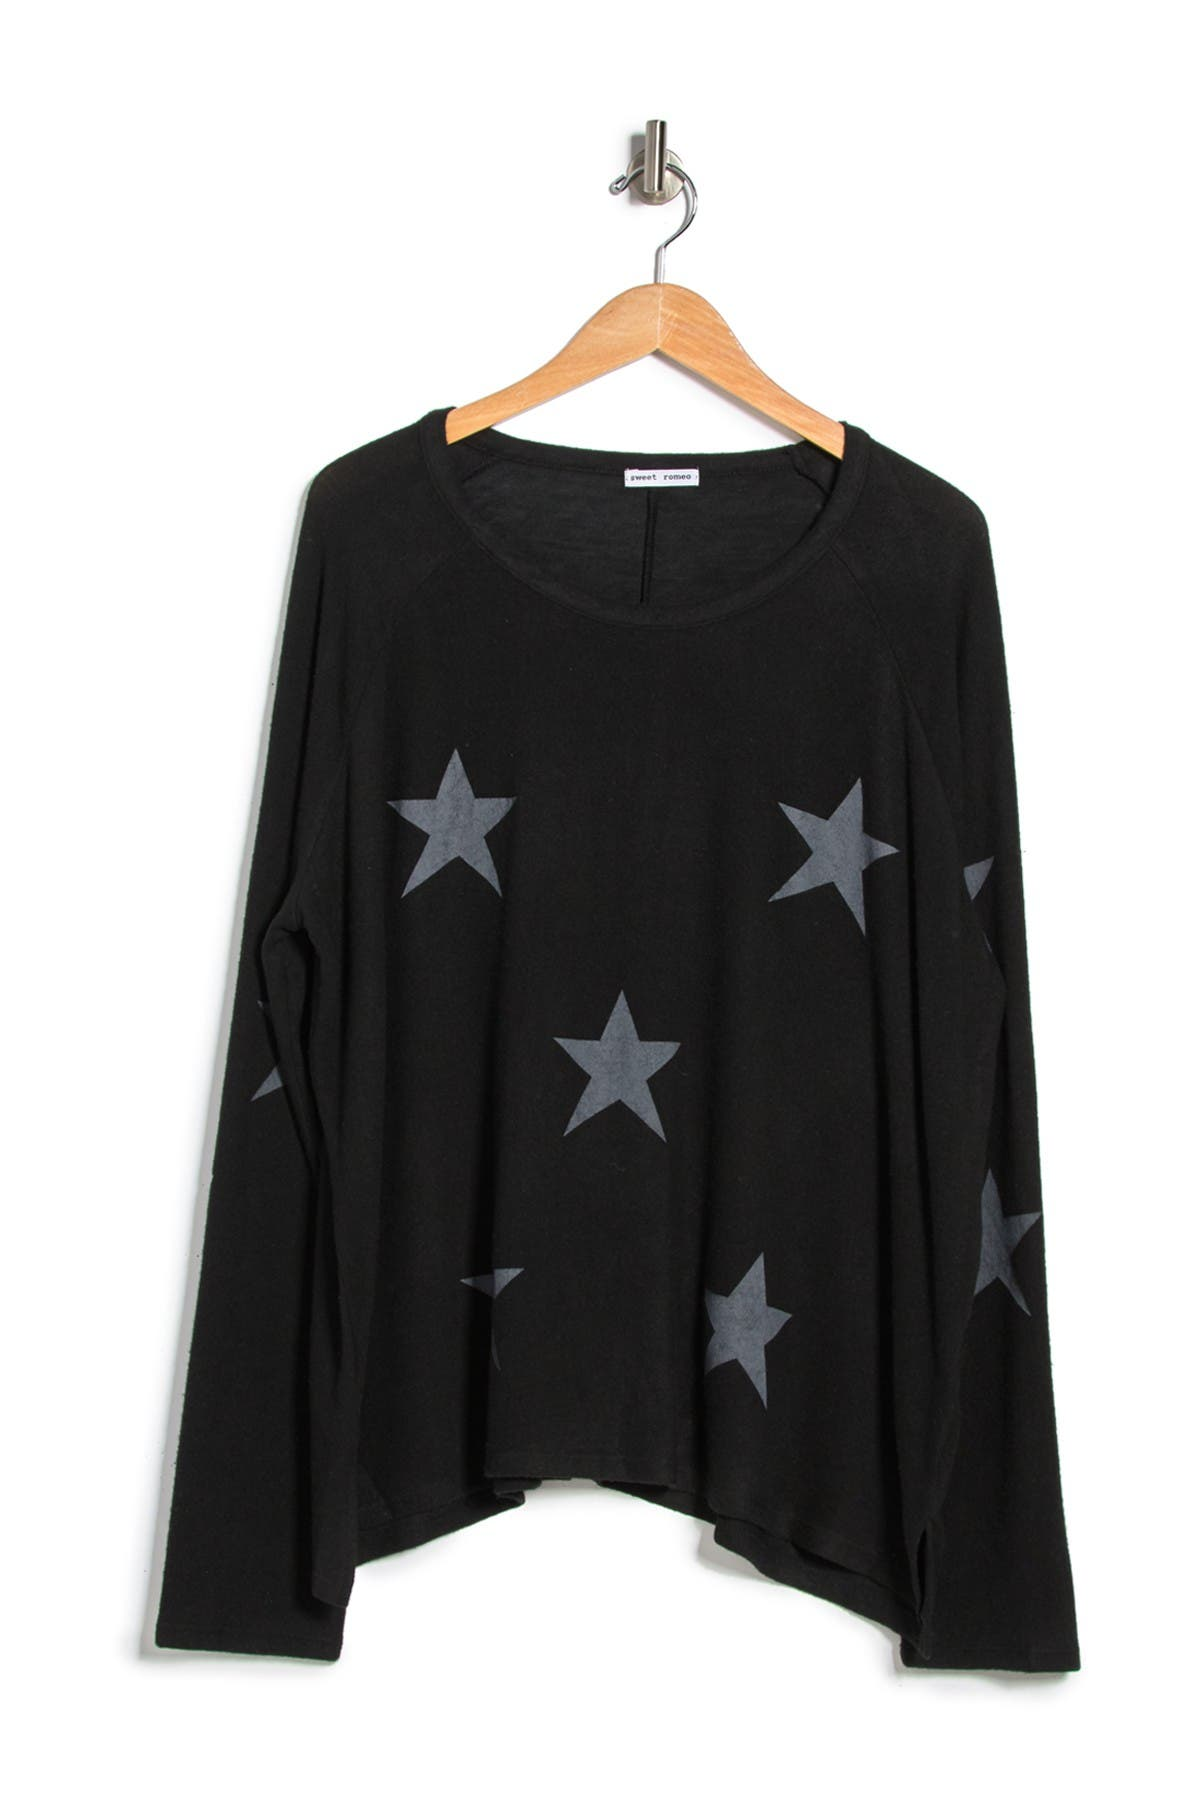 Image of Sweet Romeo Yummy Multi Star Print Top